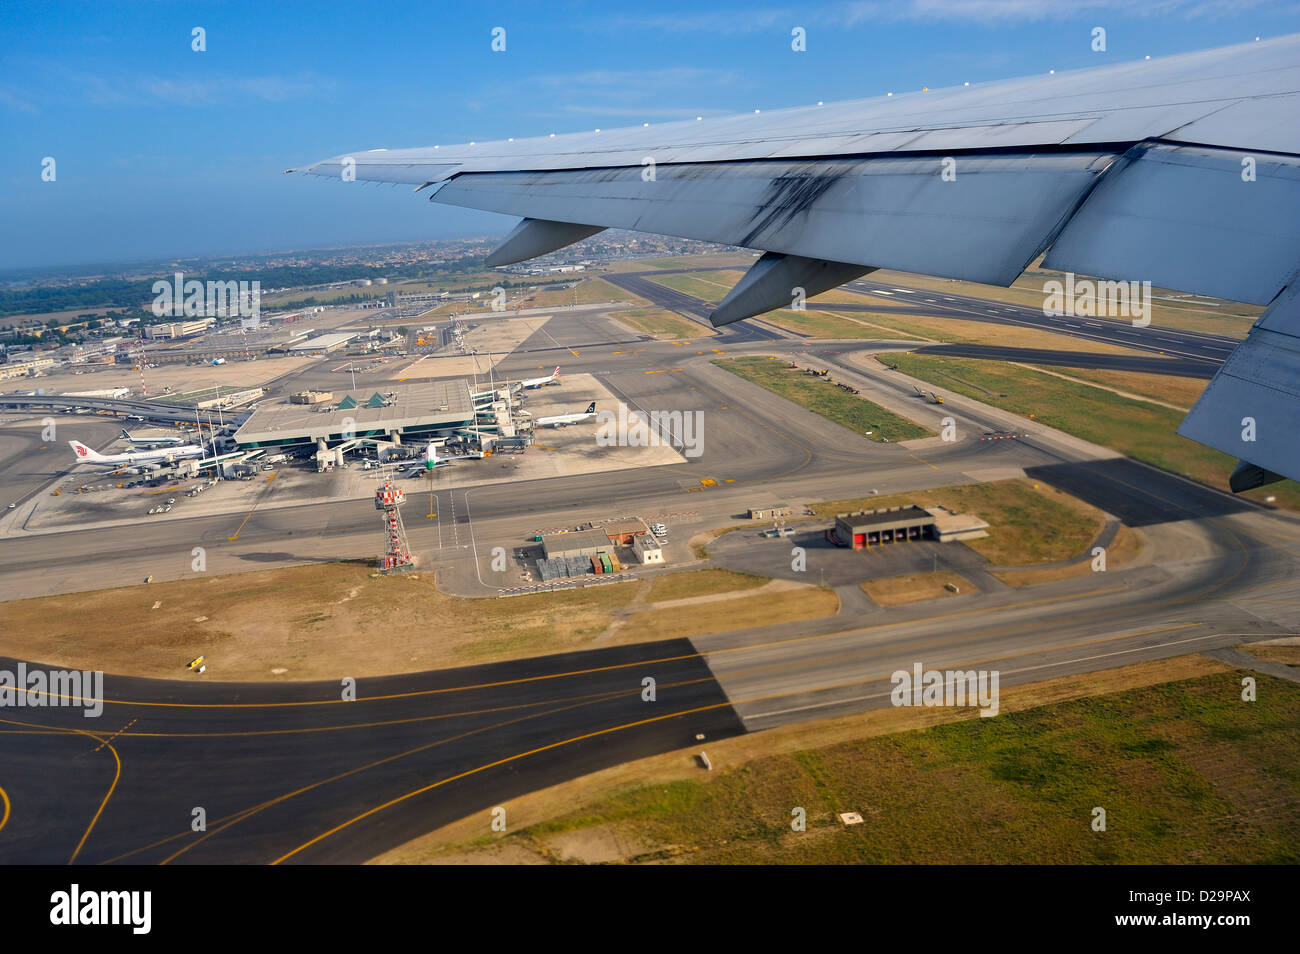 Rome airport, Italy from an aircraft - Stock Image